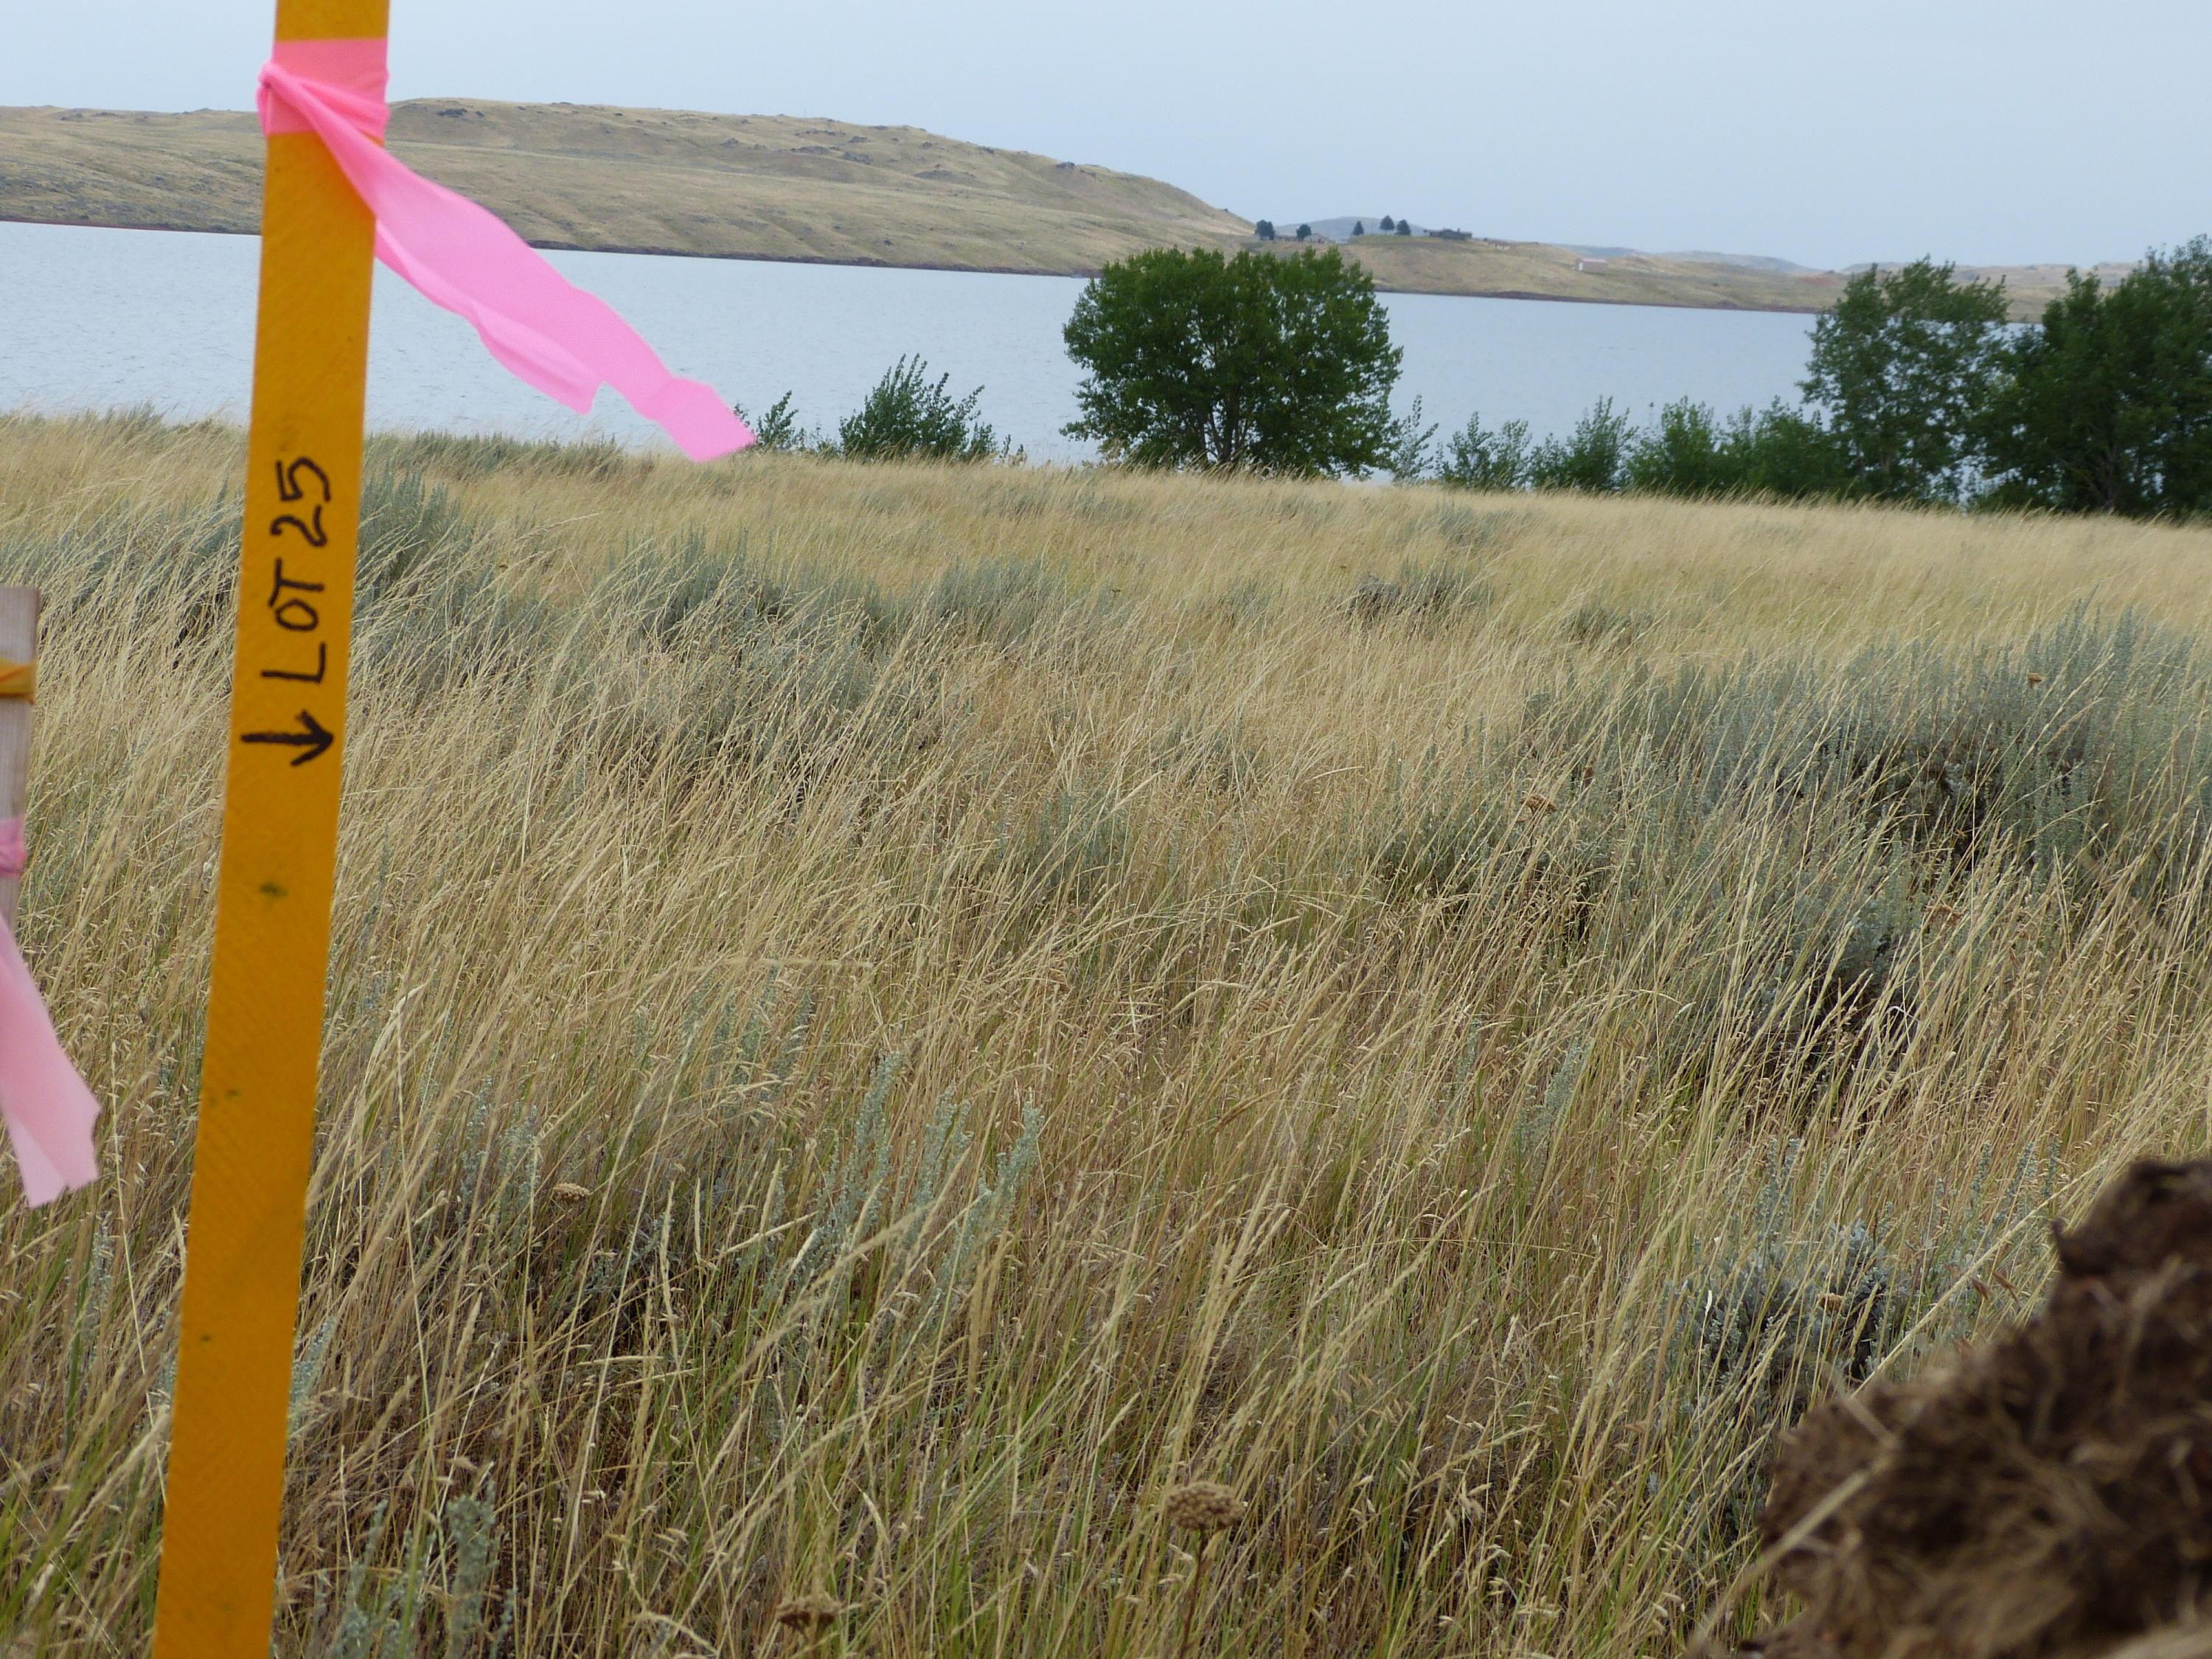 Lot 25 Promontory Way, Buffalo, Wyoming 82832, ,Building Site,For Sale,Promontory,19-527